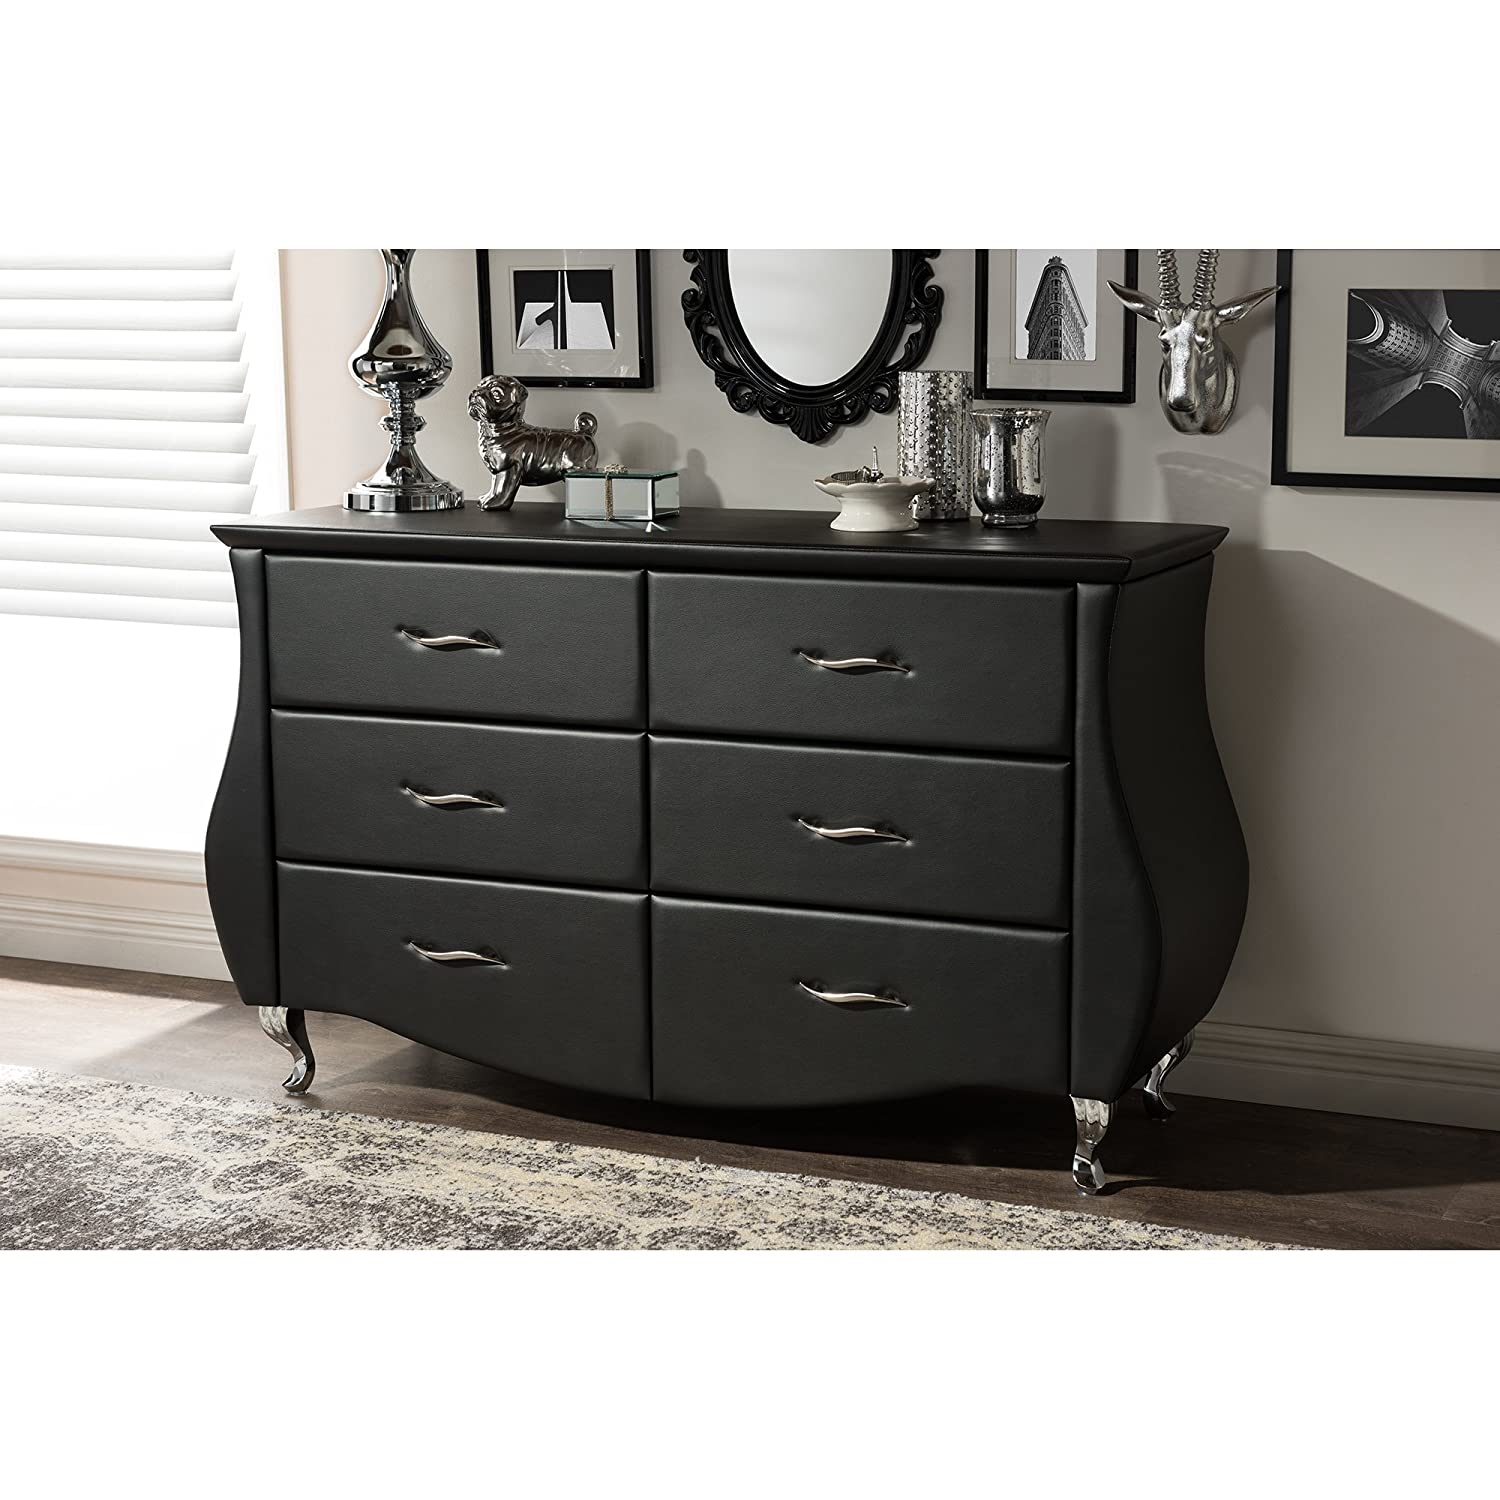 wb lennart foa d furniture black of collection gallery ii america dresser media